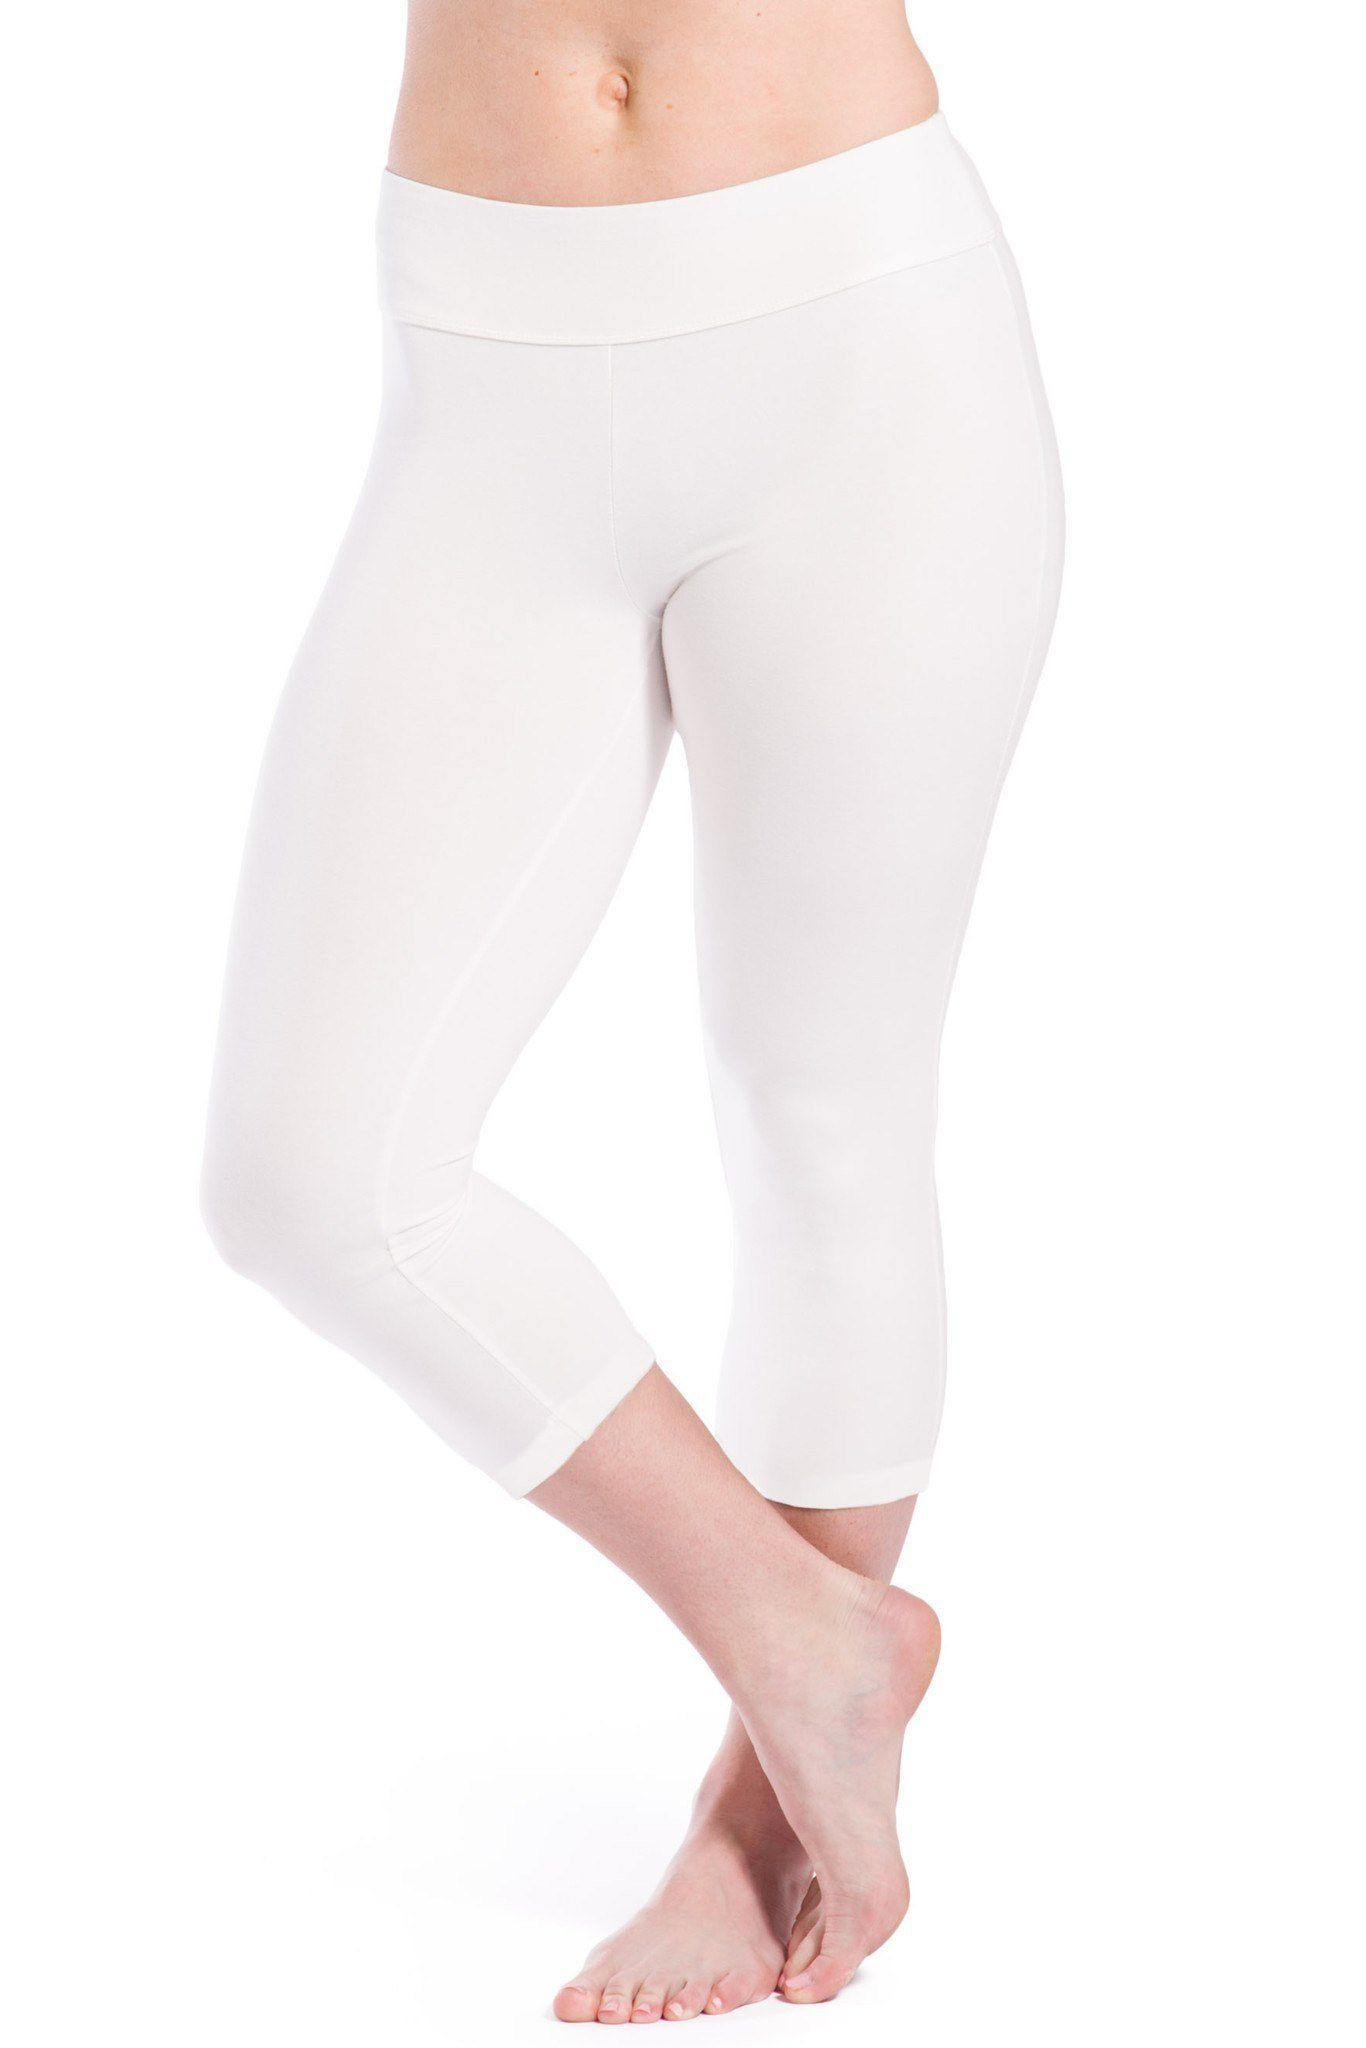 Womens>Activewear>Yoga Pants - Womens Ecofabric Capri Workout Legging, Capri Yoga Leggings